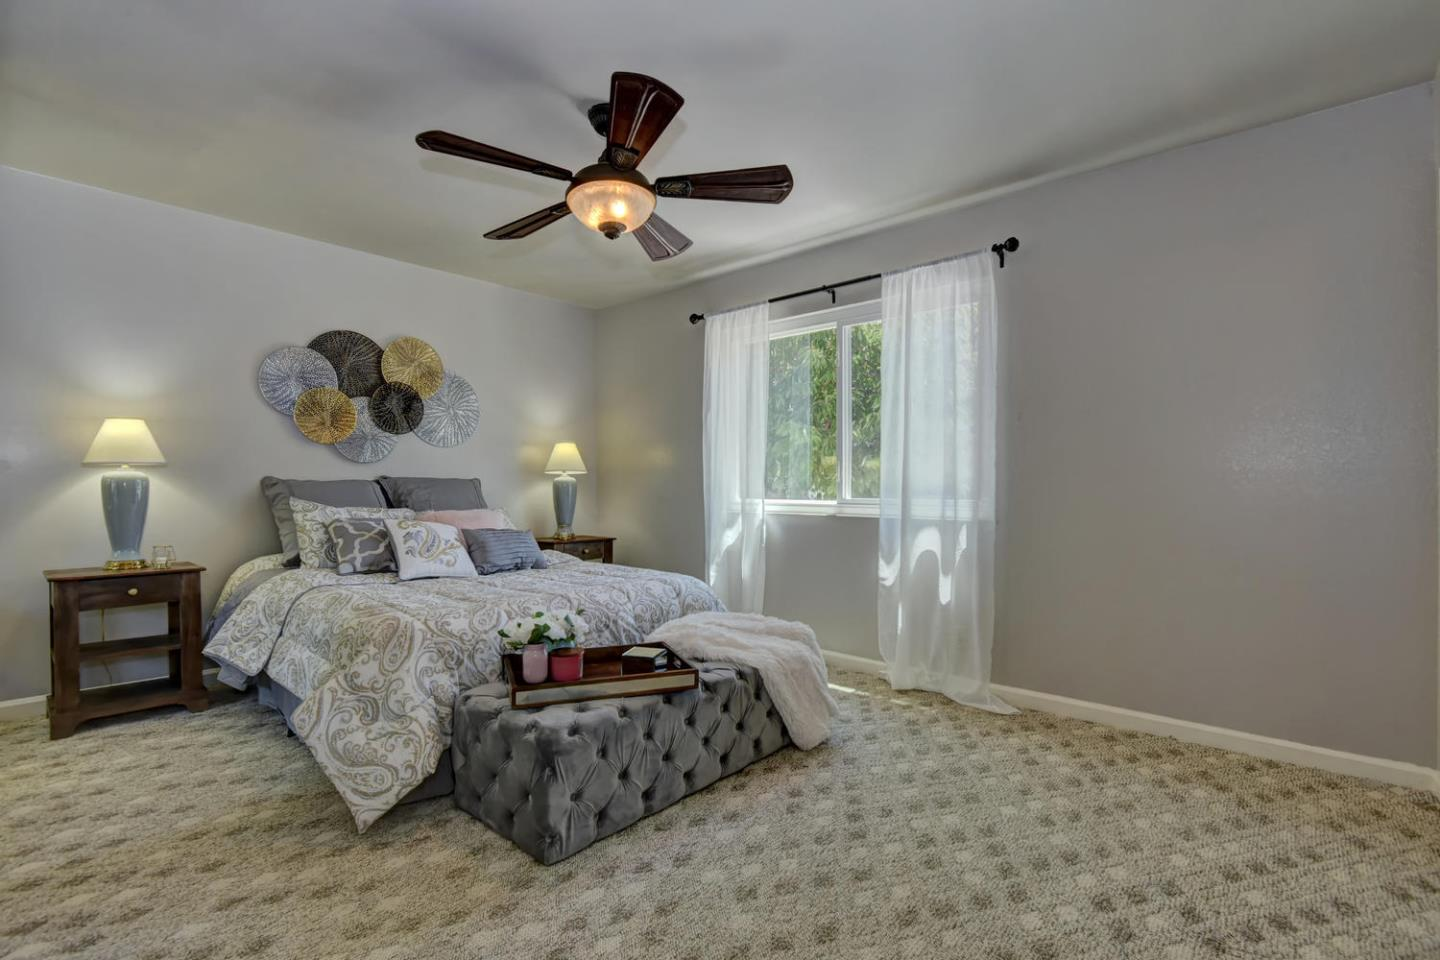 Additional photo for property listing at 1570 Peppertree Court  Morgan Hill, Kalifornien 95037 Vereinigte Staaten